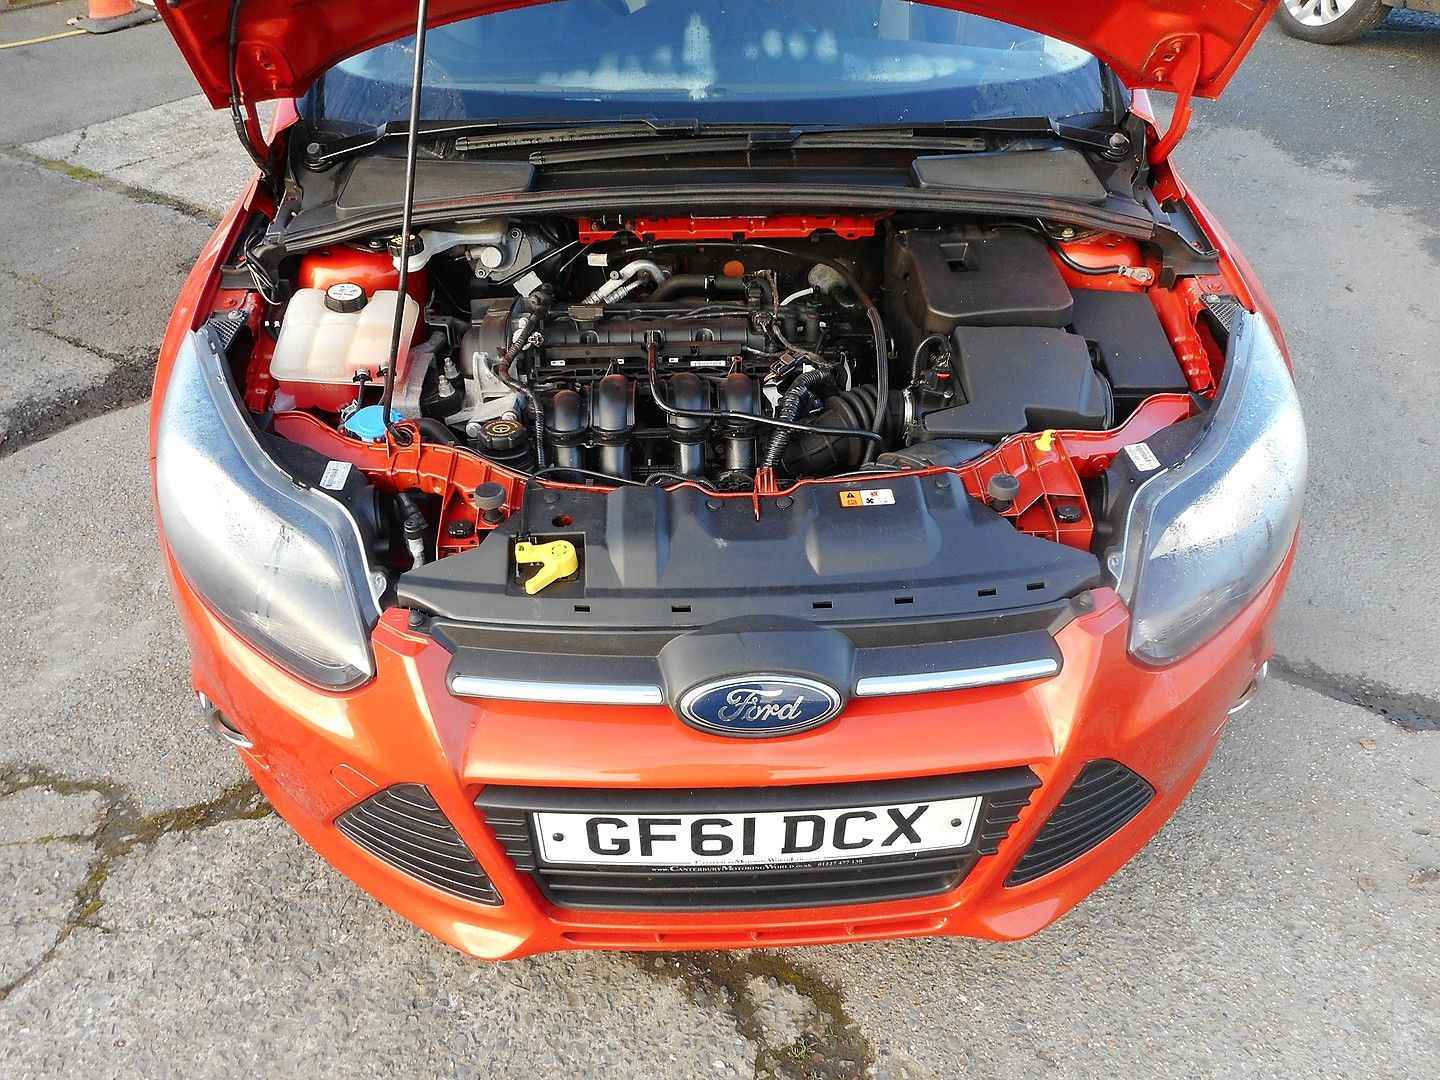 FORD Focus 1.6 Zetec Auto (2011) - Picture 16